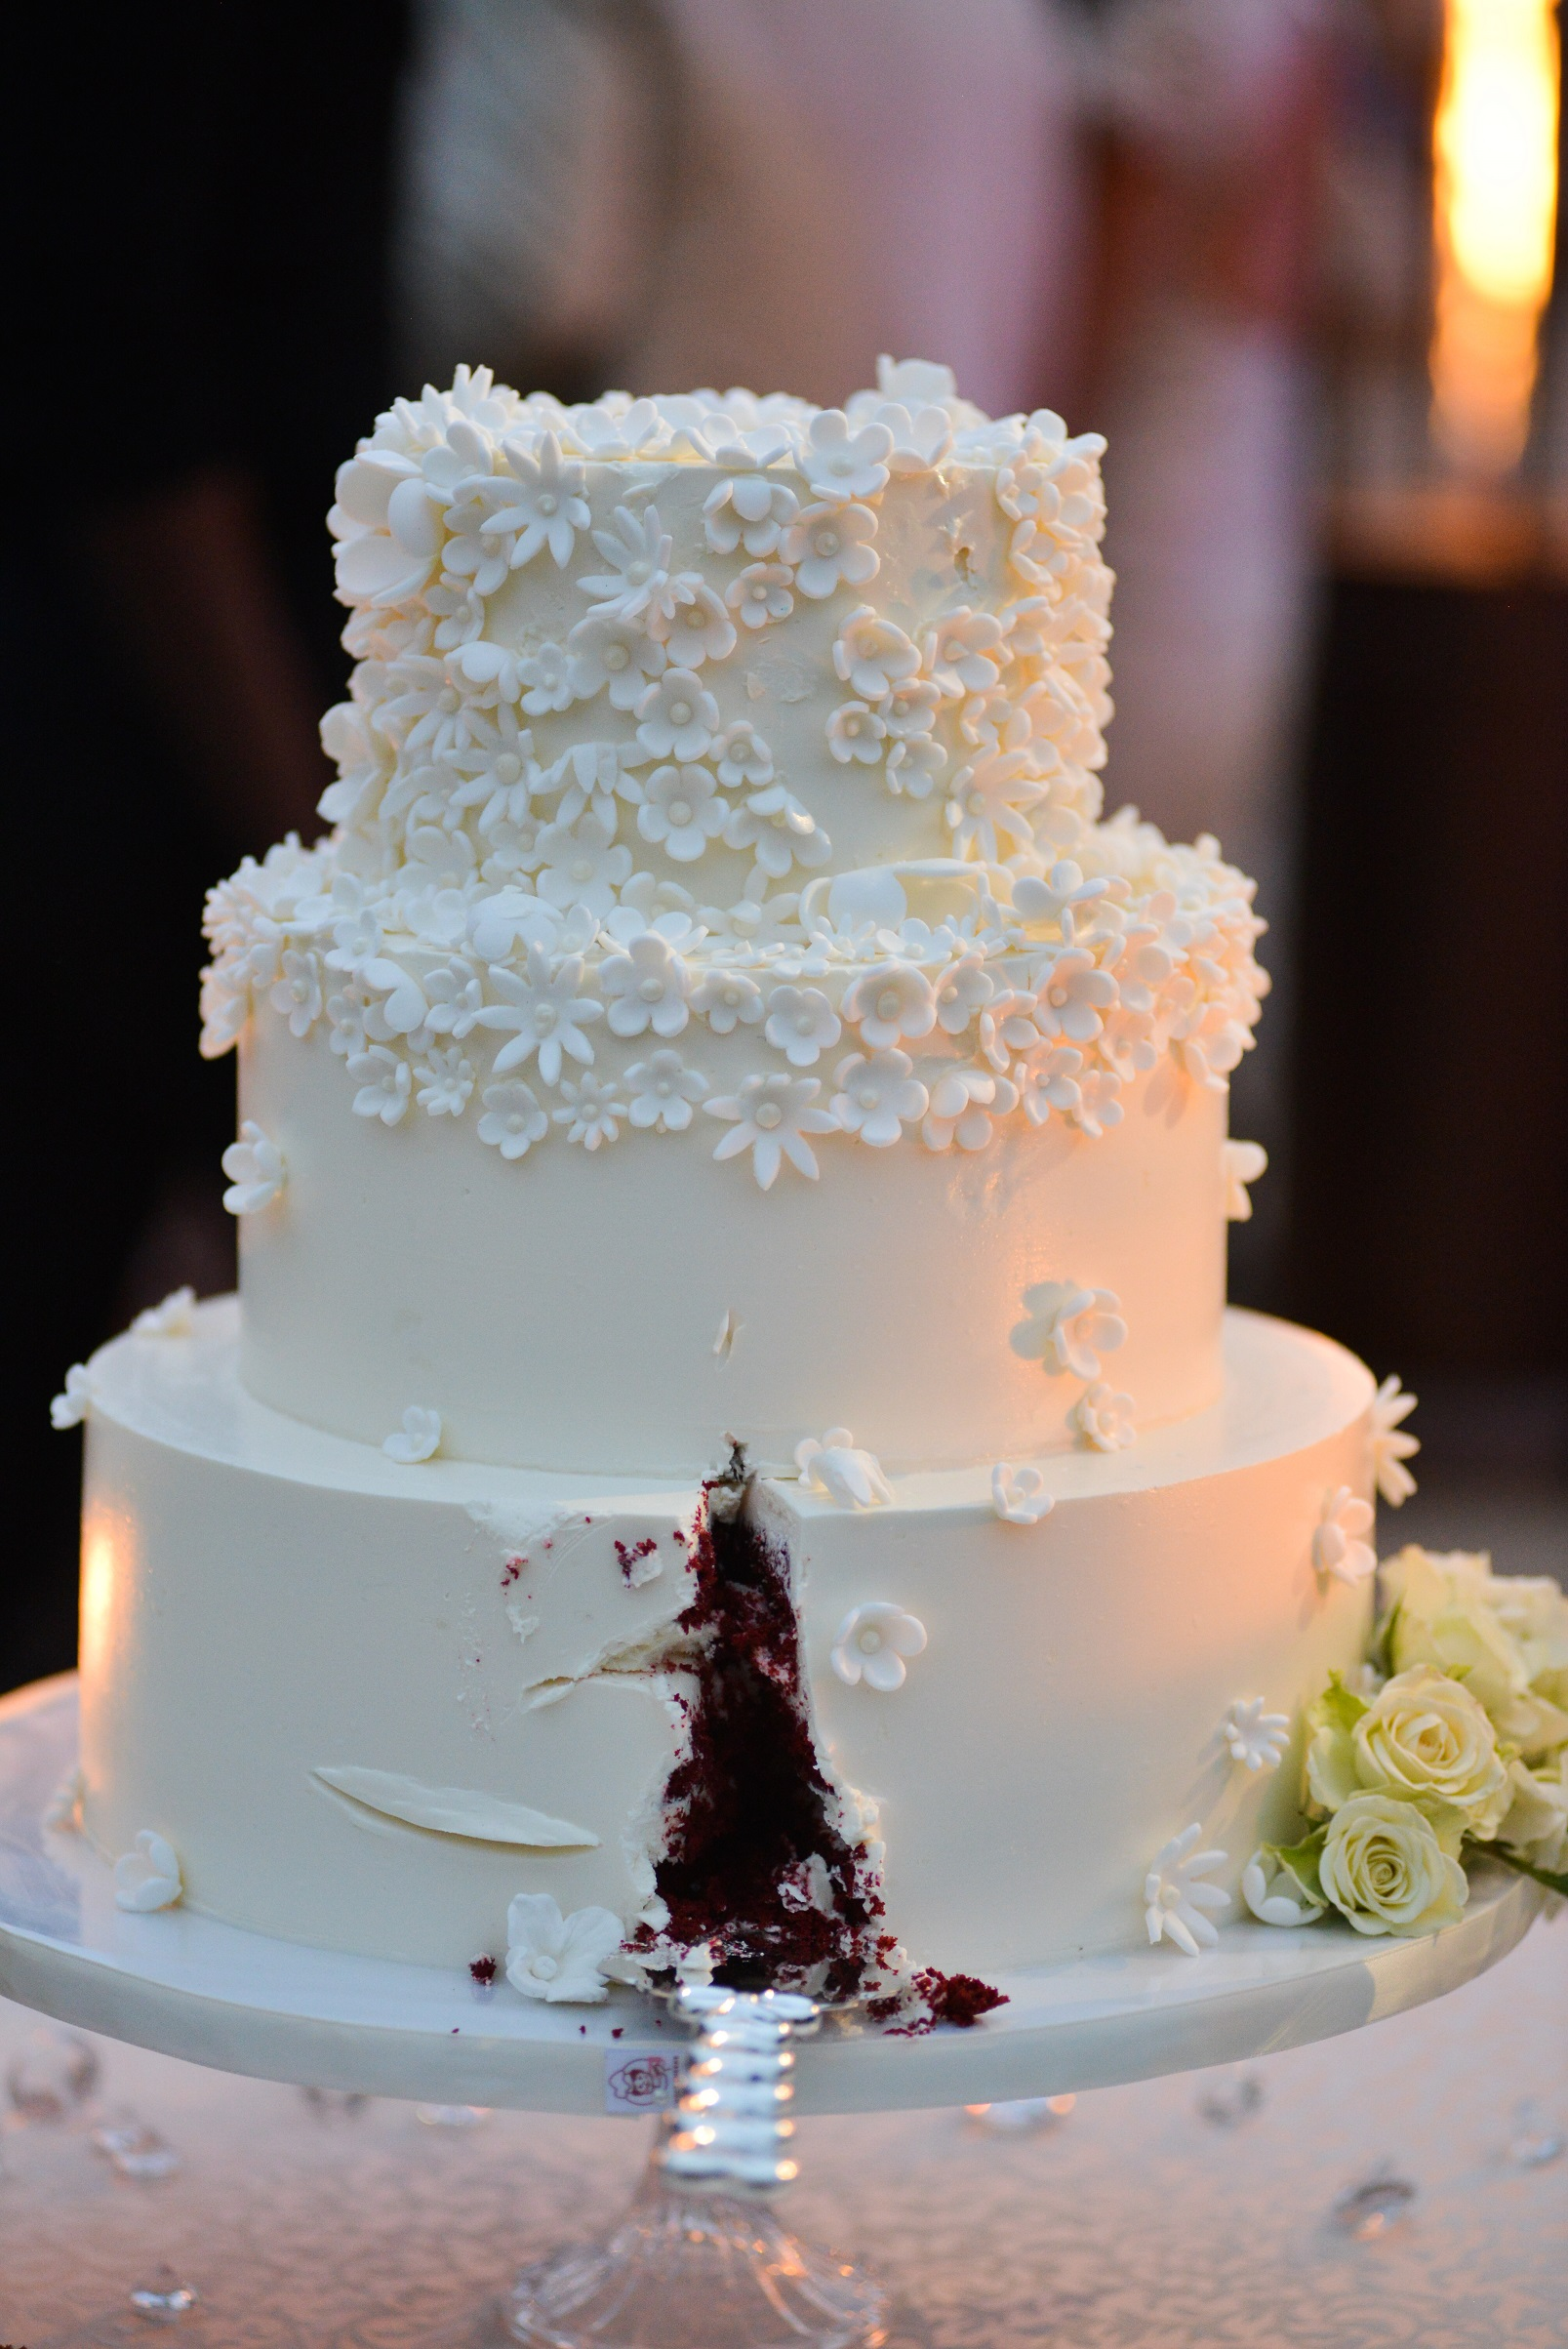 Cut chocolate wedding cake with white florets